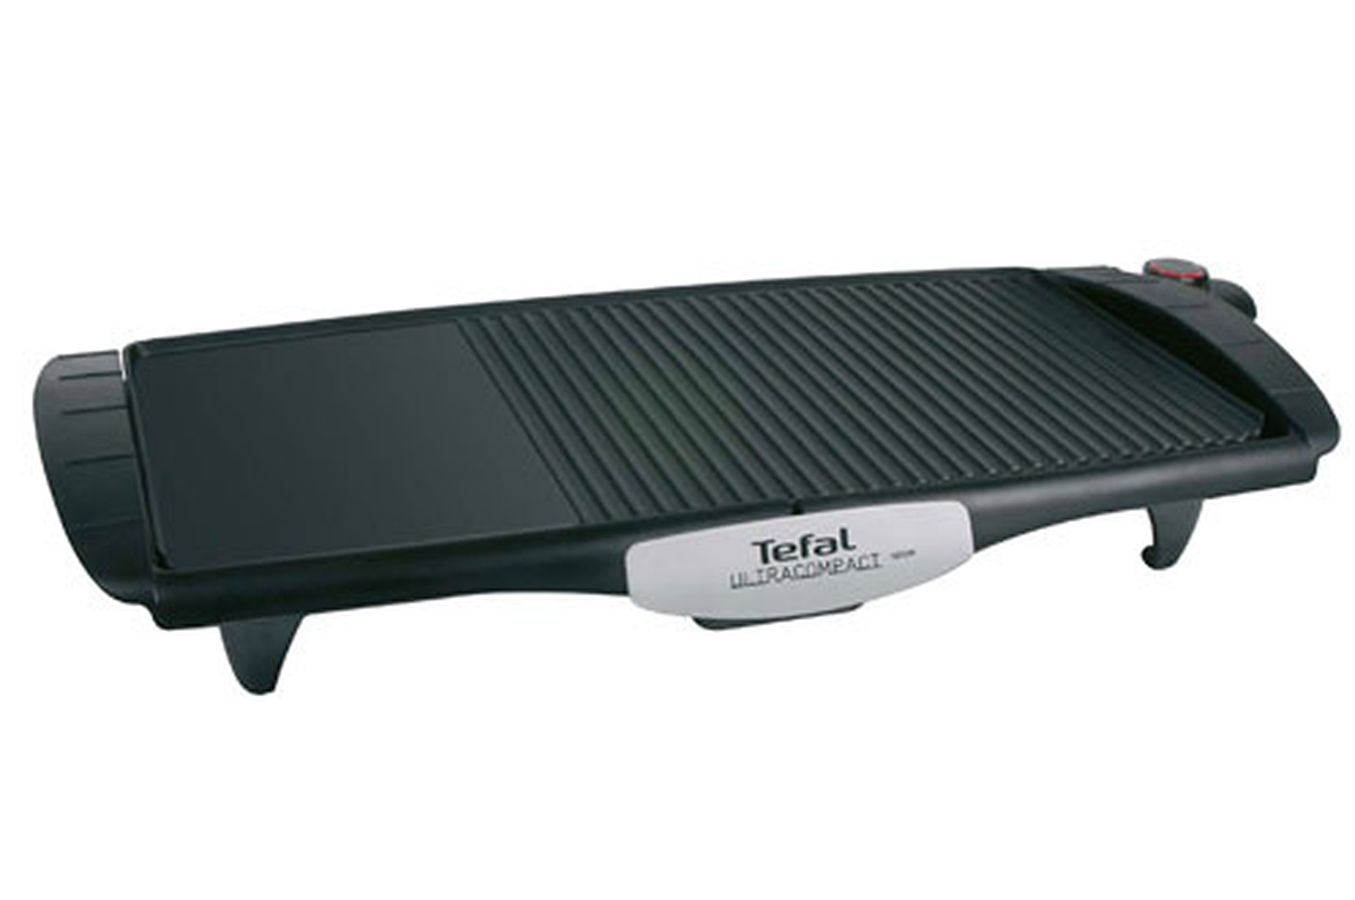 plancha tefal tg390812 ultracompact 3449459 darty. Black Bedroom Furniture Sets. Home Design Ideas